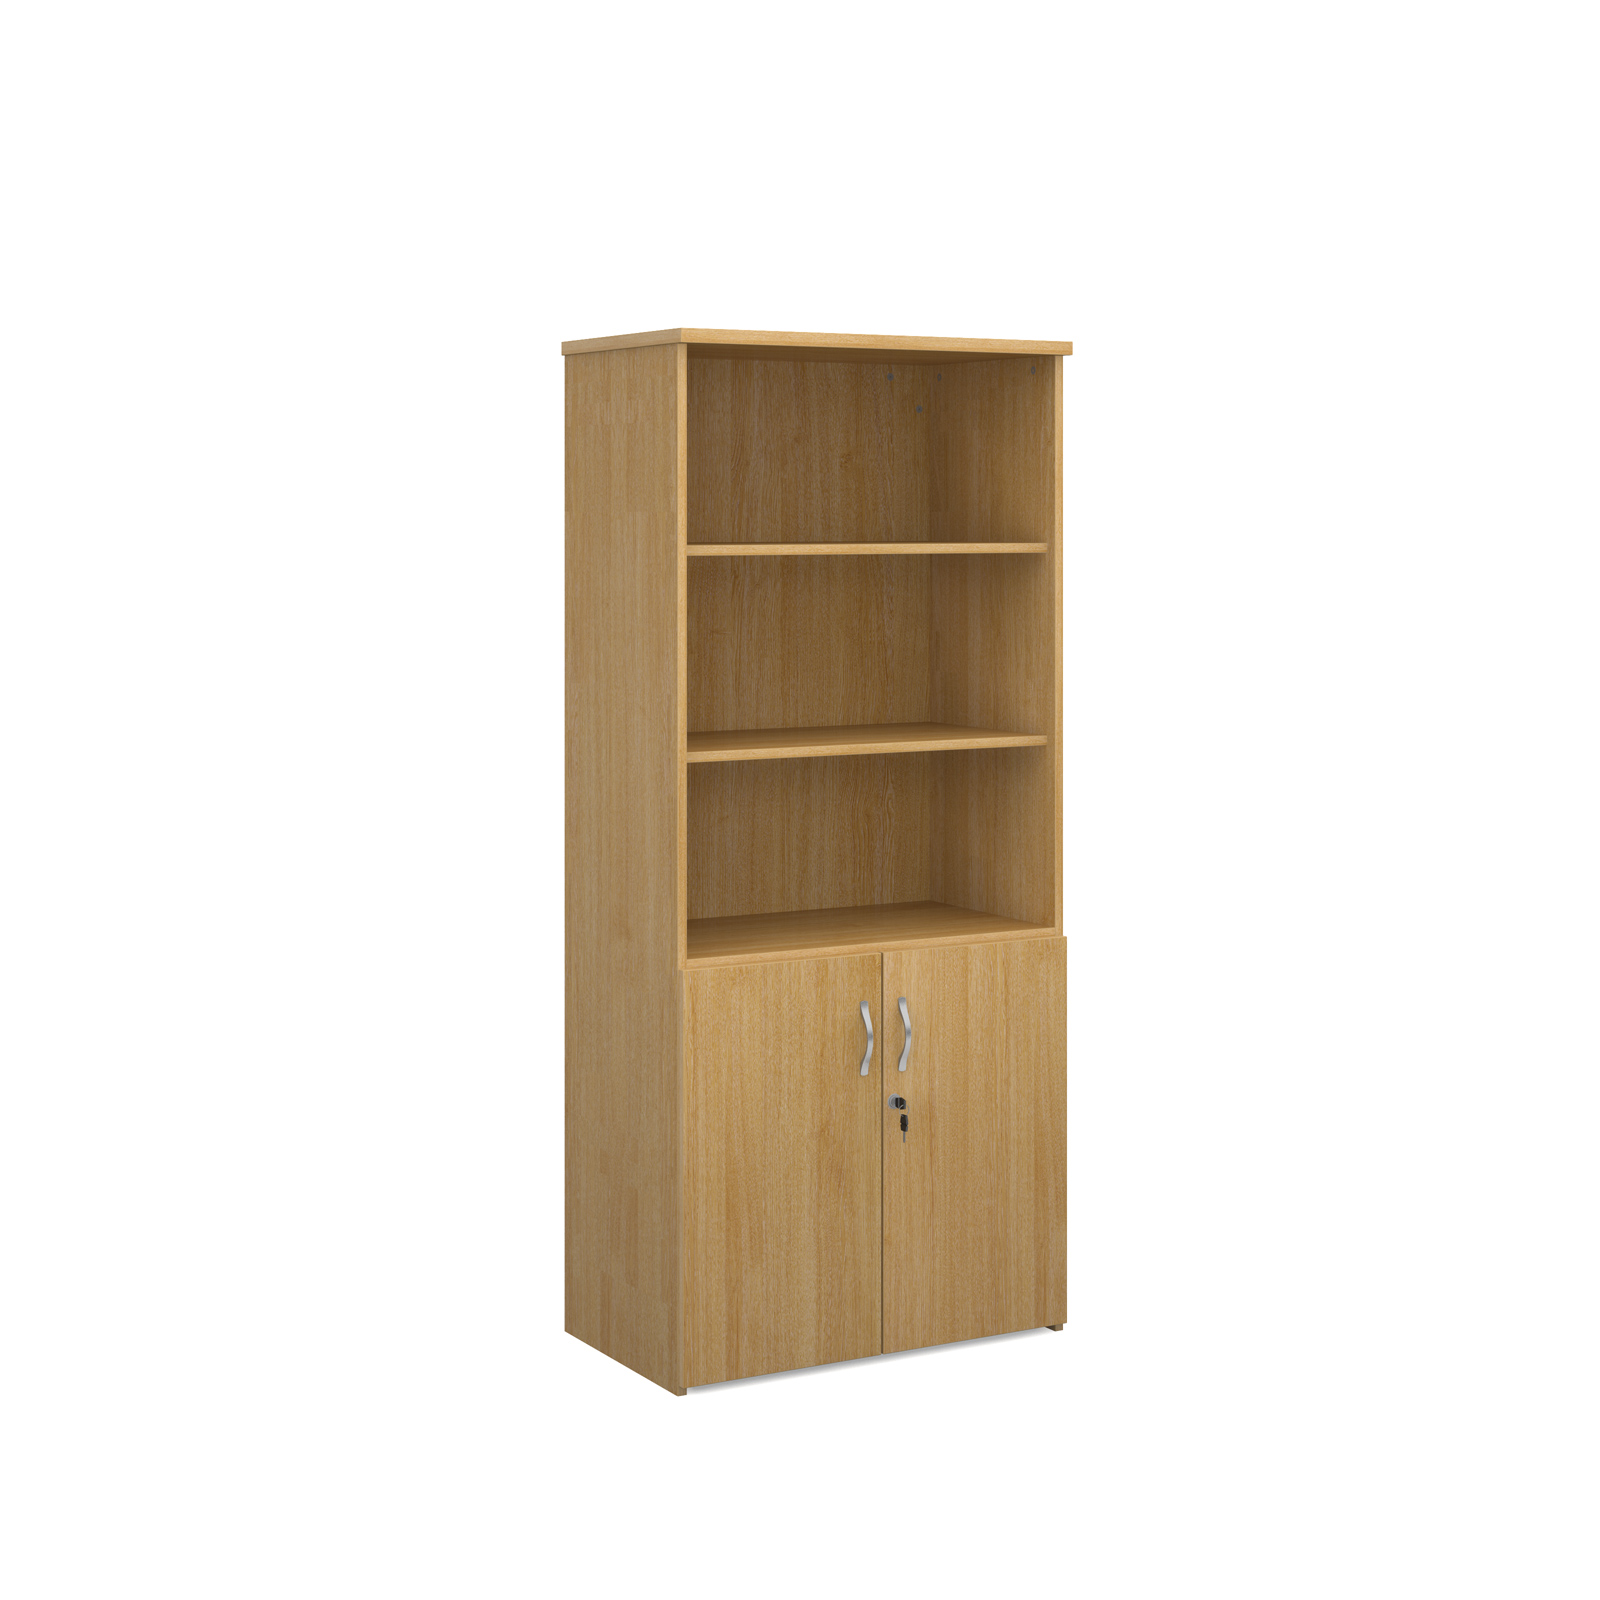 1790mm high combination unit with open top and wood doors in oak